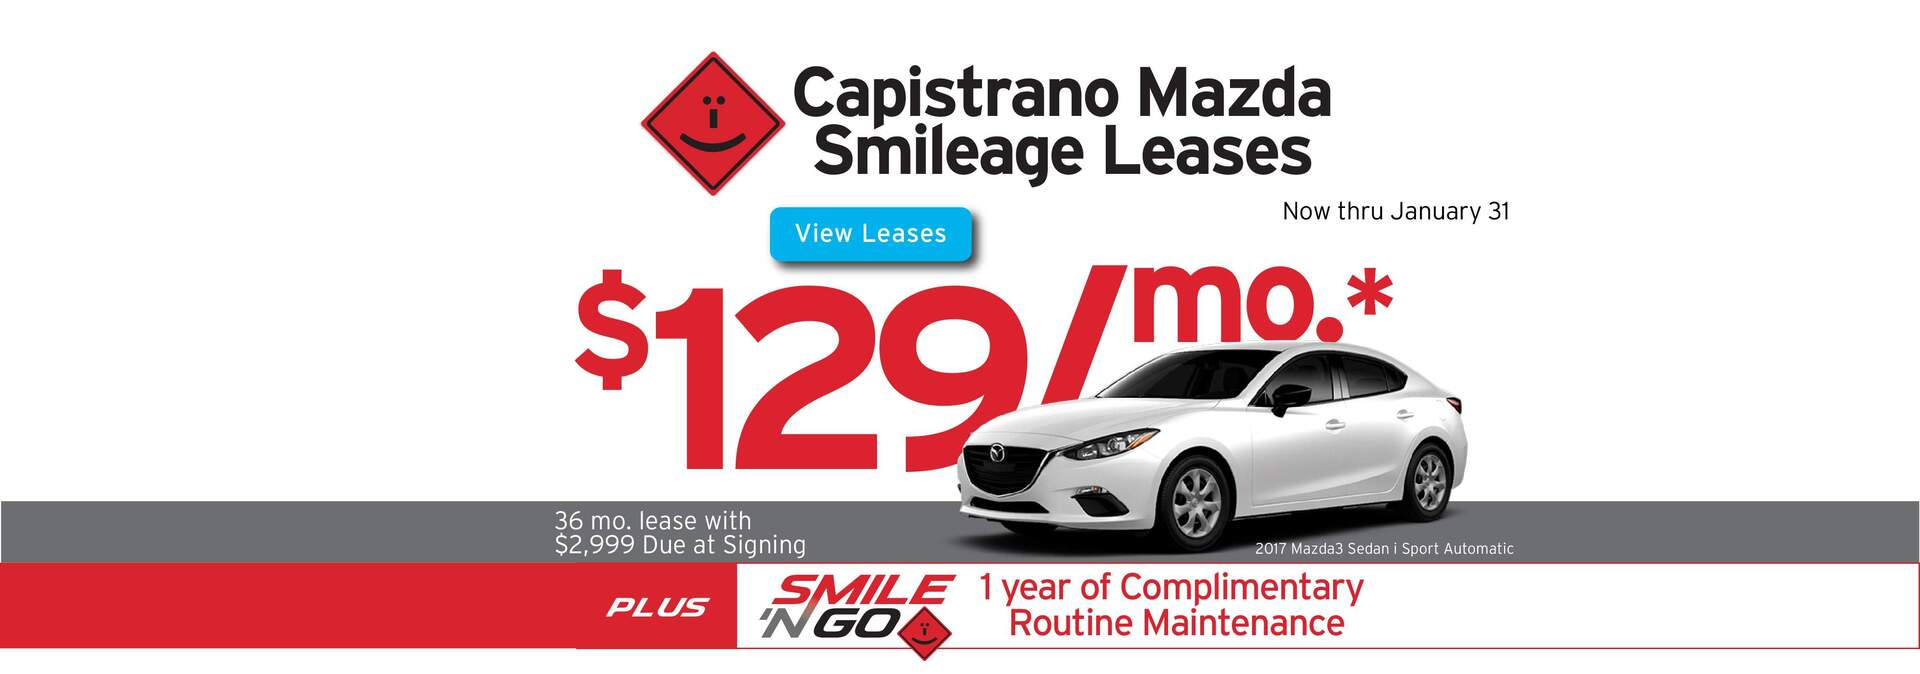 Capistrano Mazda Year End Lease Event leases starting at $119/mo.